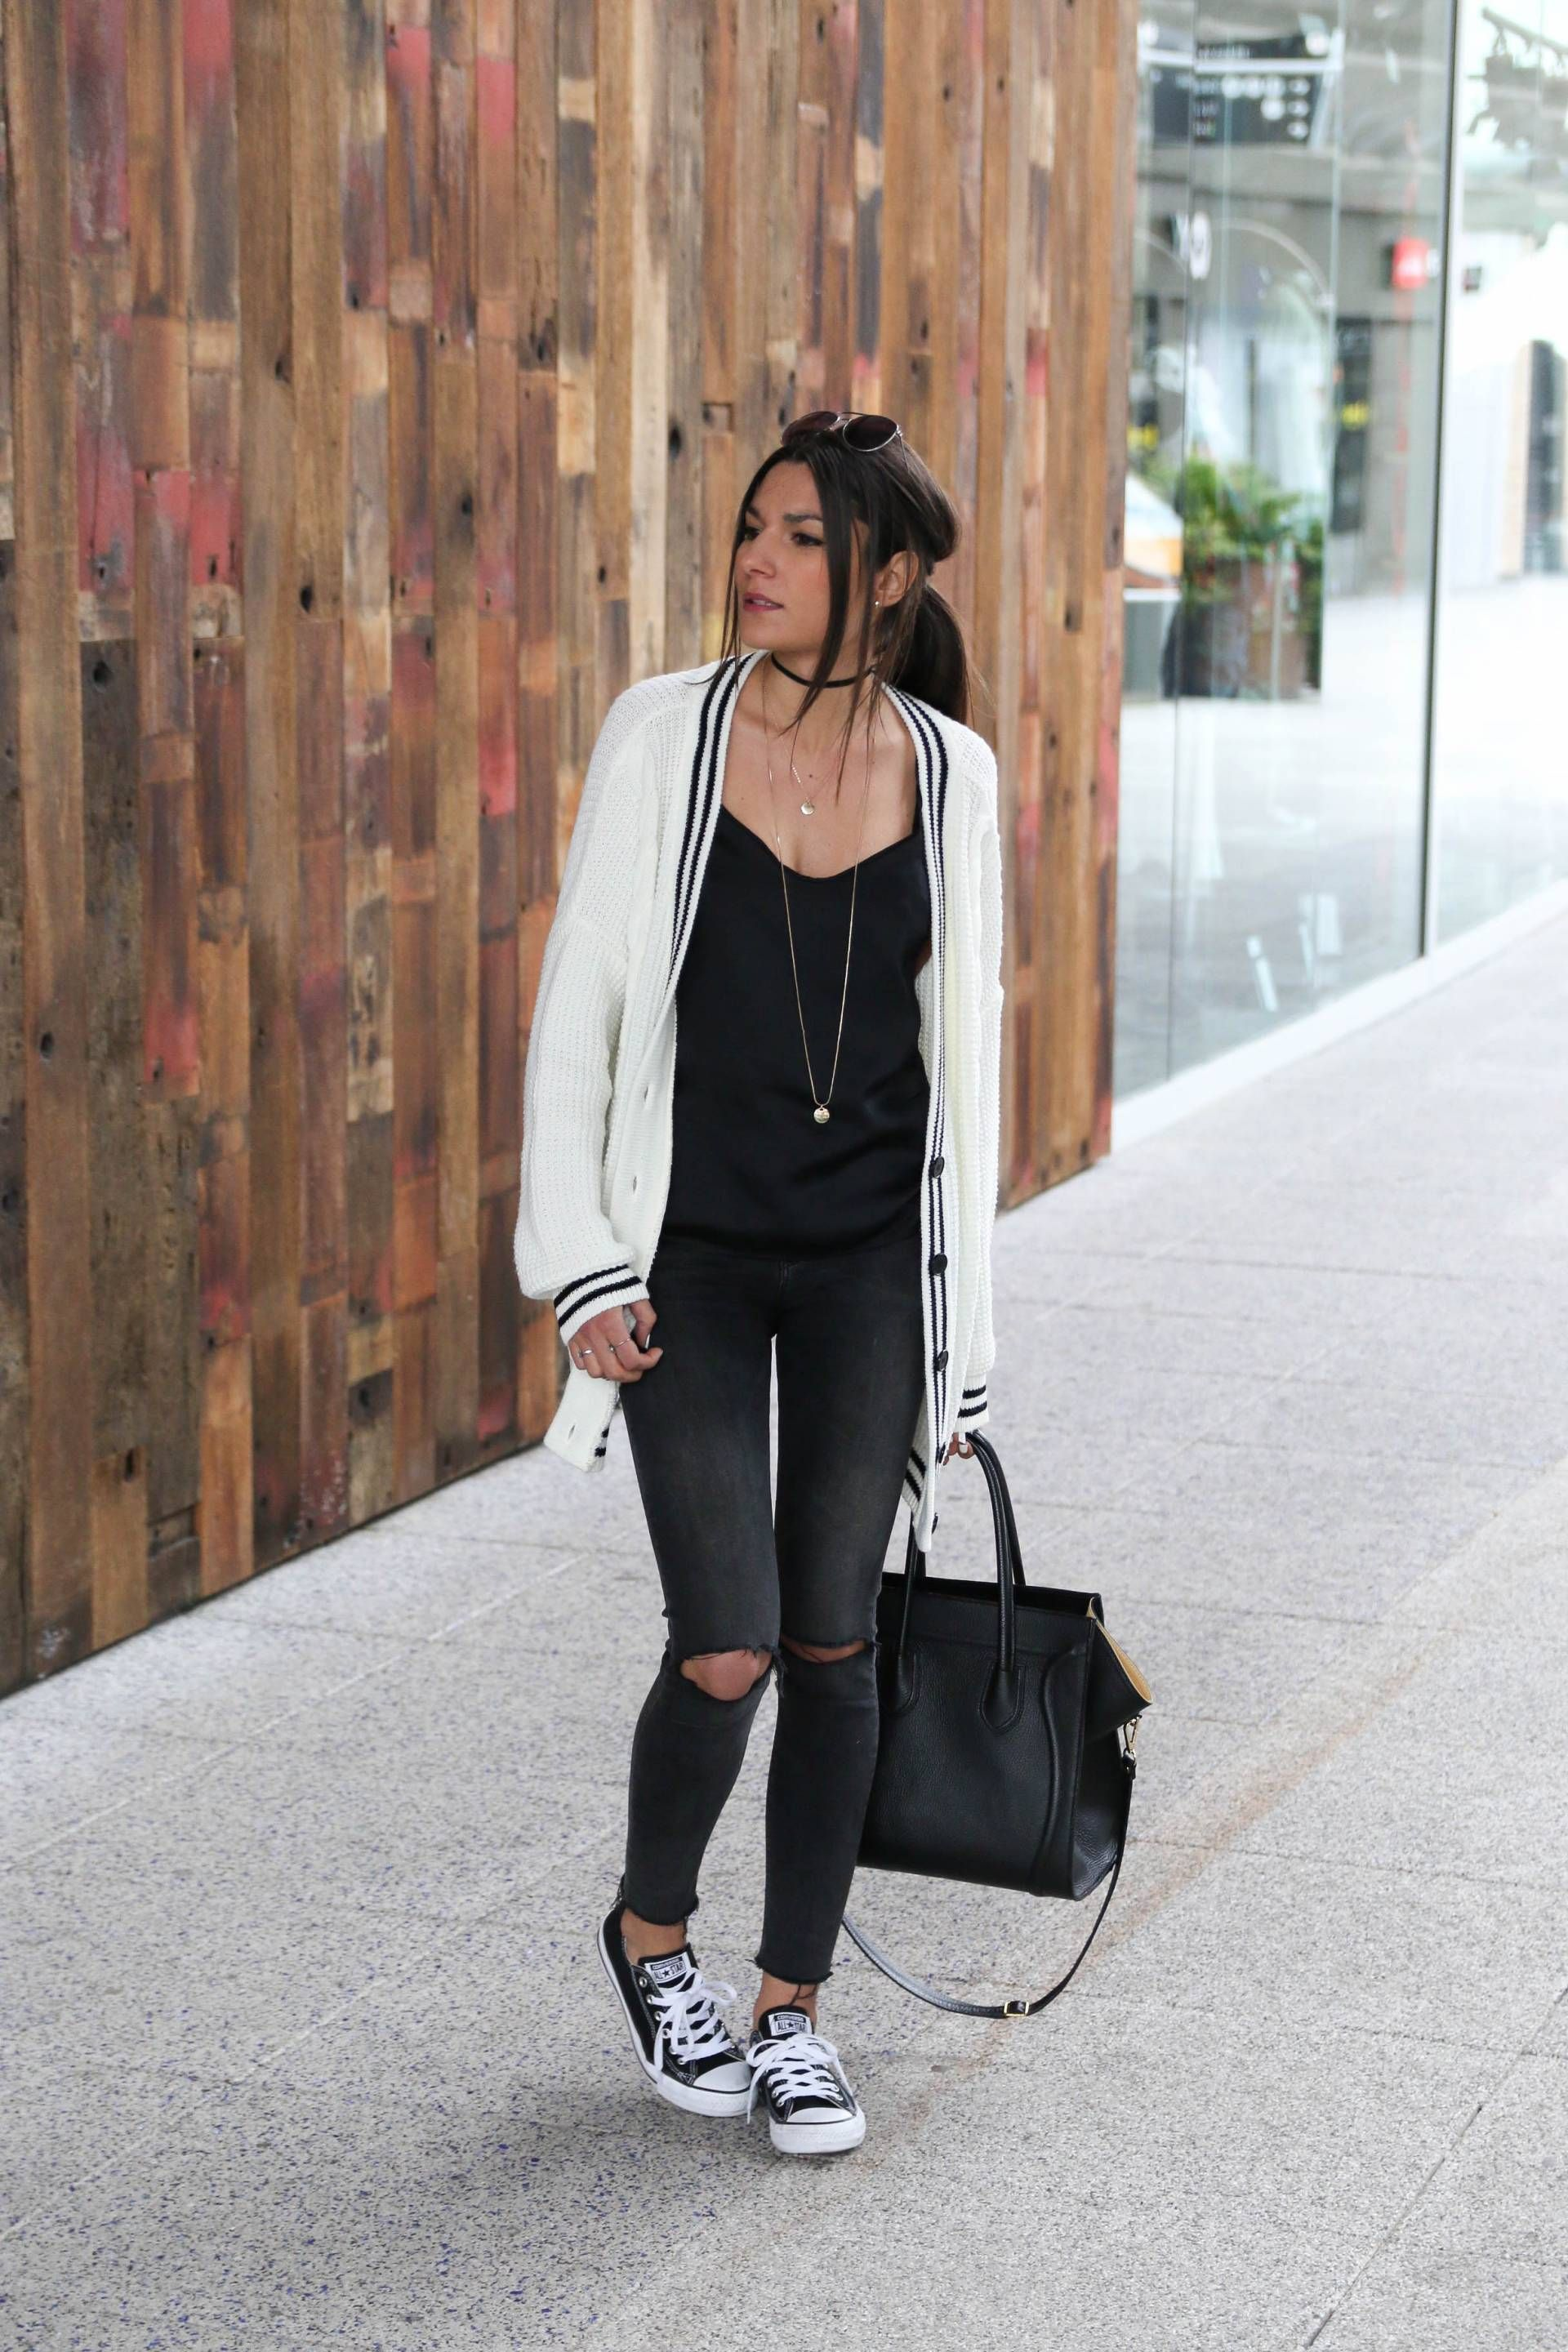 c024314d159f2c Wear converse with a cable knit cardigan and a pair of ripped black jeans  to steal Federica L. s cute and casual style. This look is affordable and  ...